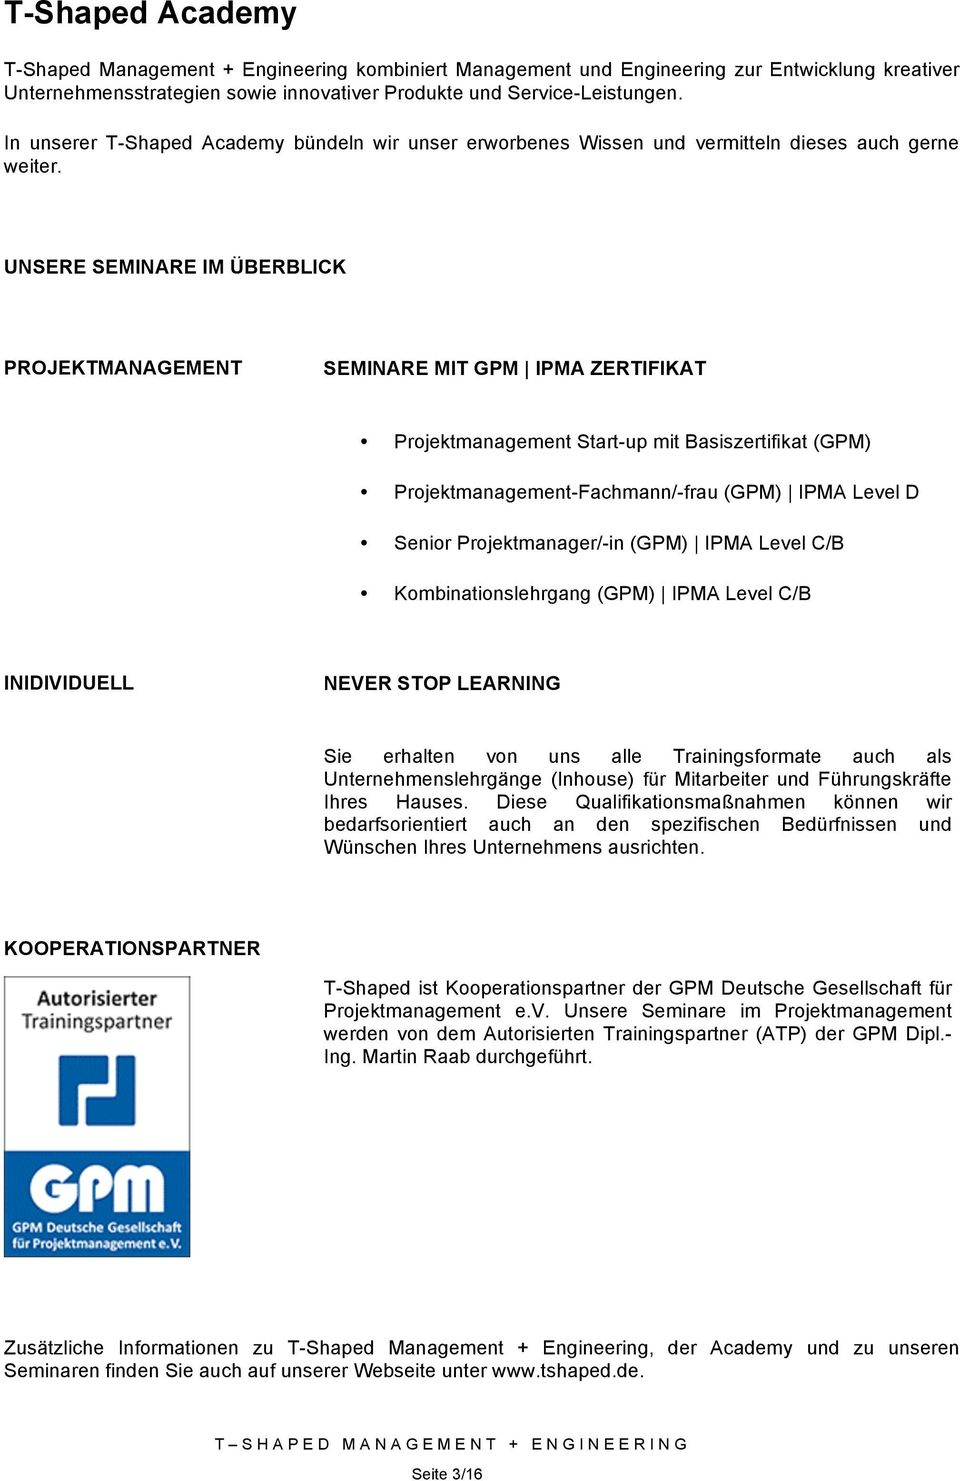 UNSERE SEMINARE IM ÜBERBLICK PROJEKTMANAGEMENT SEMINARE MIT GPM IPMA ZERTIFIKAT Projektmanagement Start-up mit Basiszertifikat (GPM) Projektmanagement-Fachmann/-frau (GPM) IPMA Level D Senior